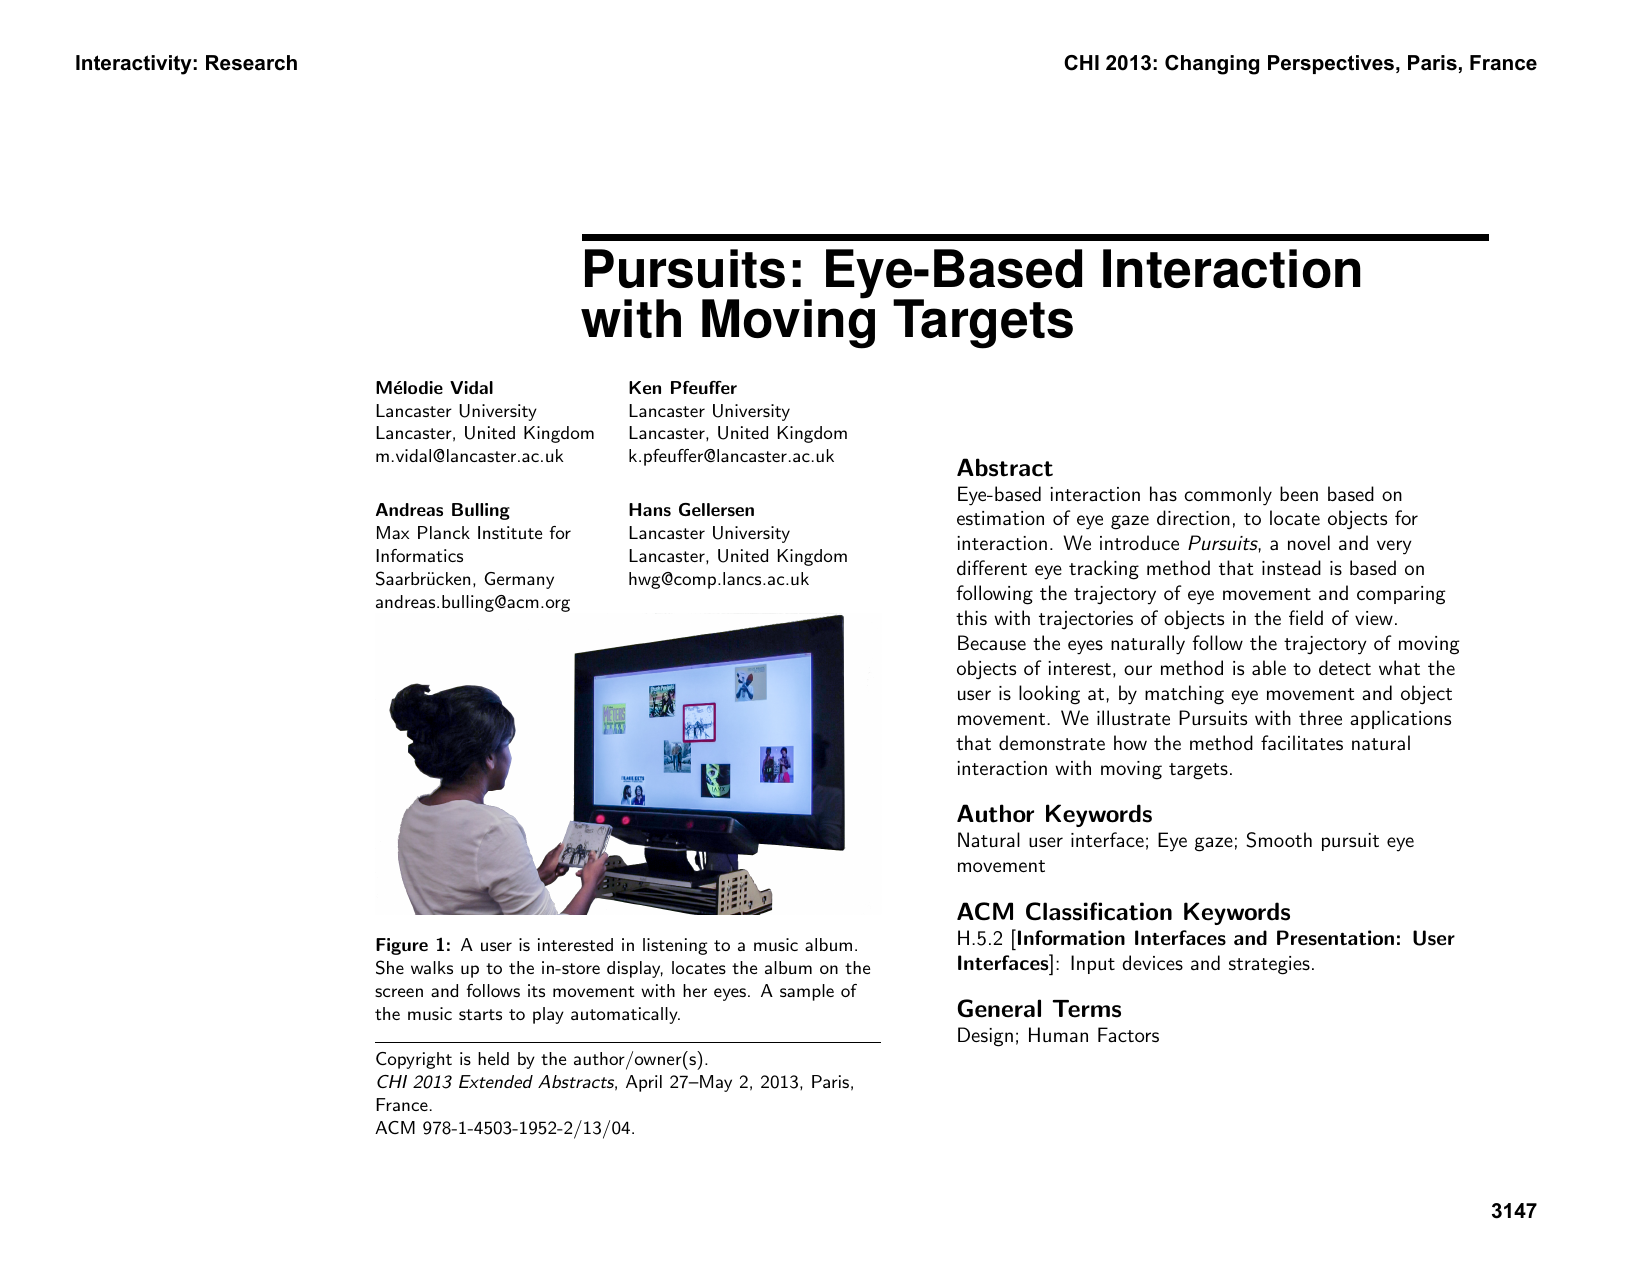 Pursuits: eye-based interaction with moving targets